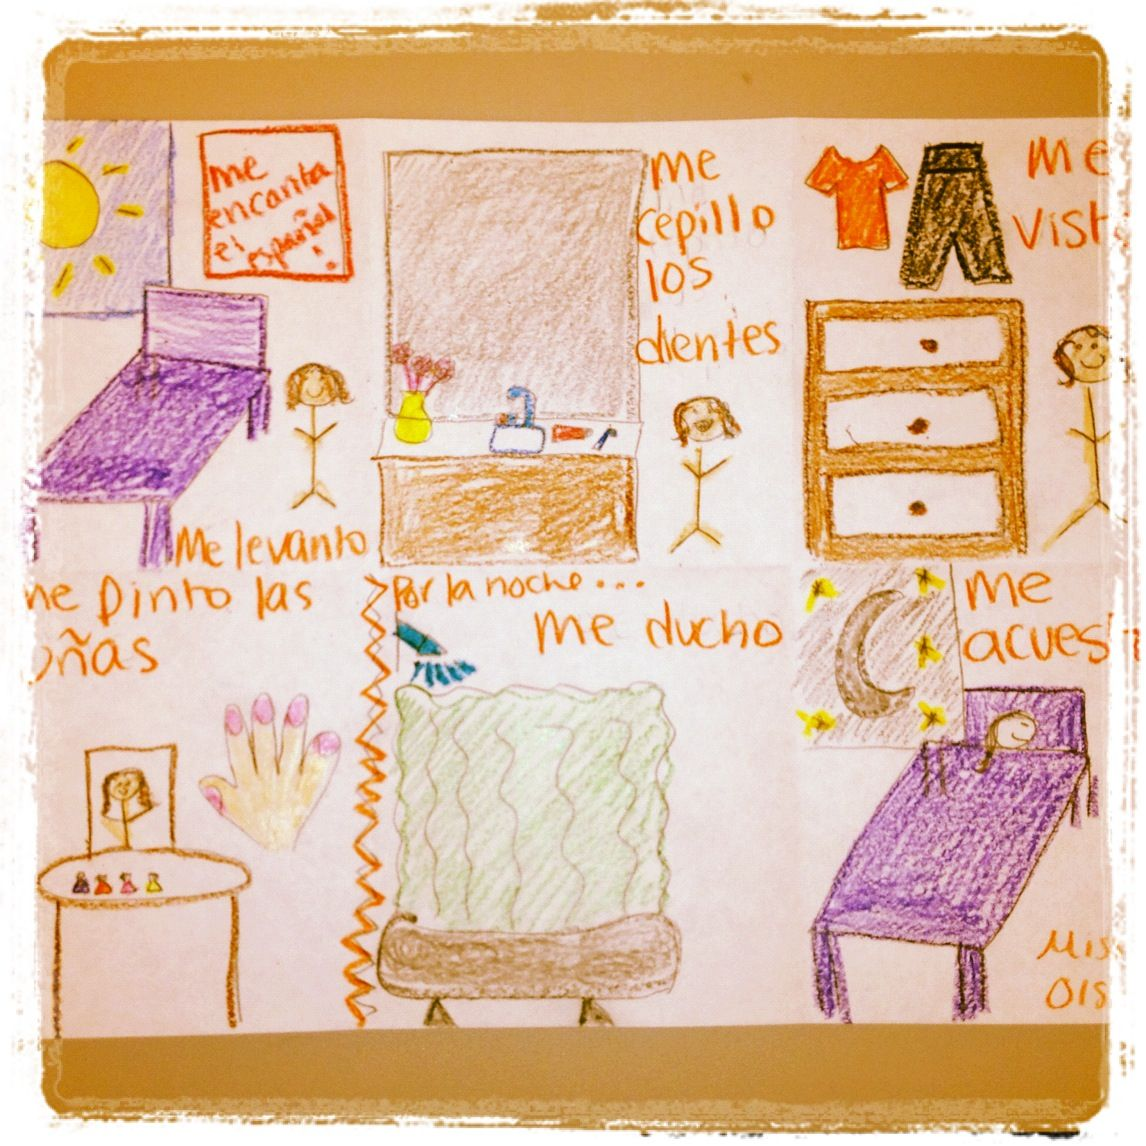 Teaching Reflexive Verbs Have Students Draw Out Their Daily Routine Student Drawing Reflexive Verbs Teaching [ 1146 x 1146 Pixel ]